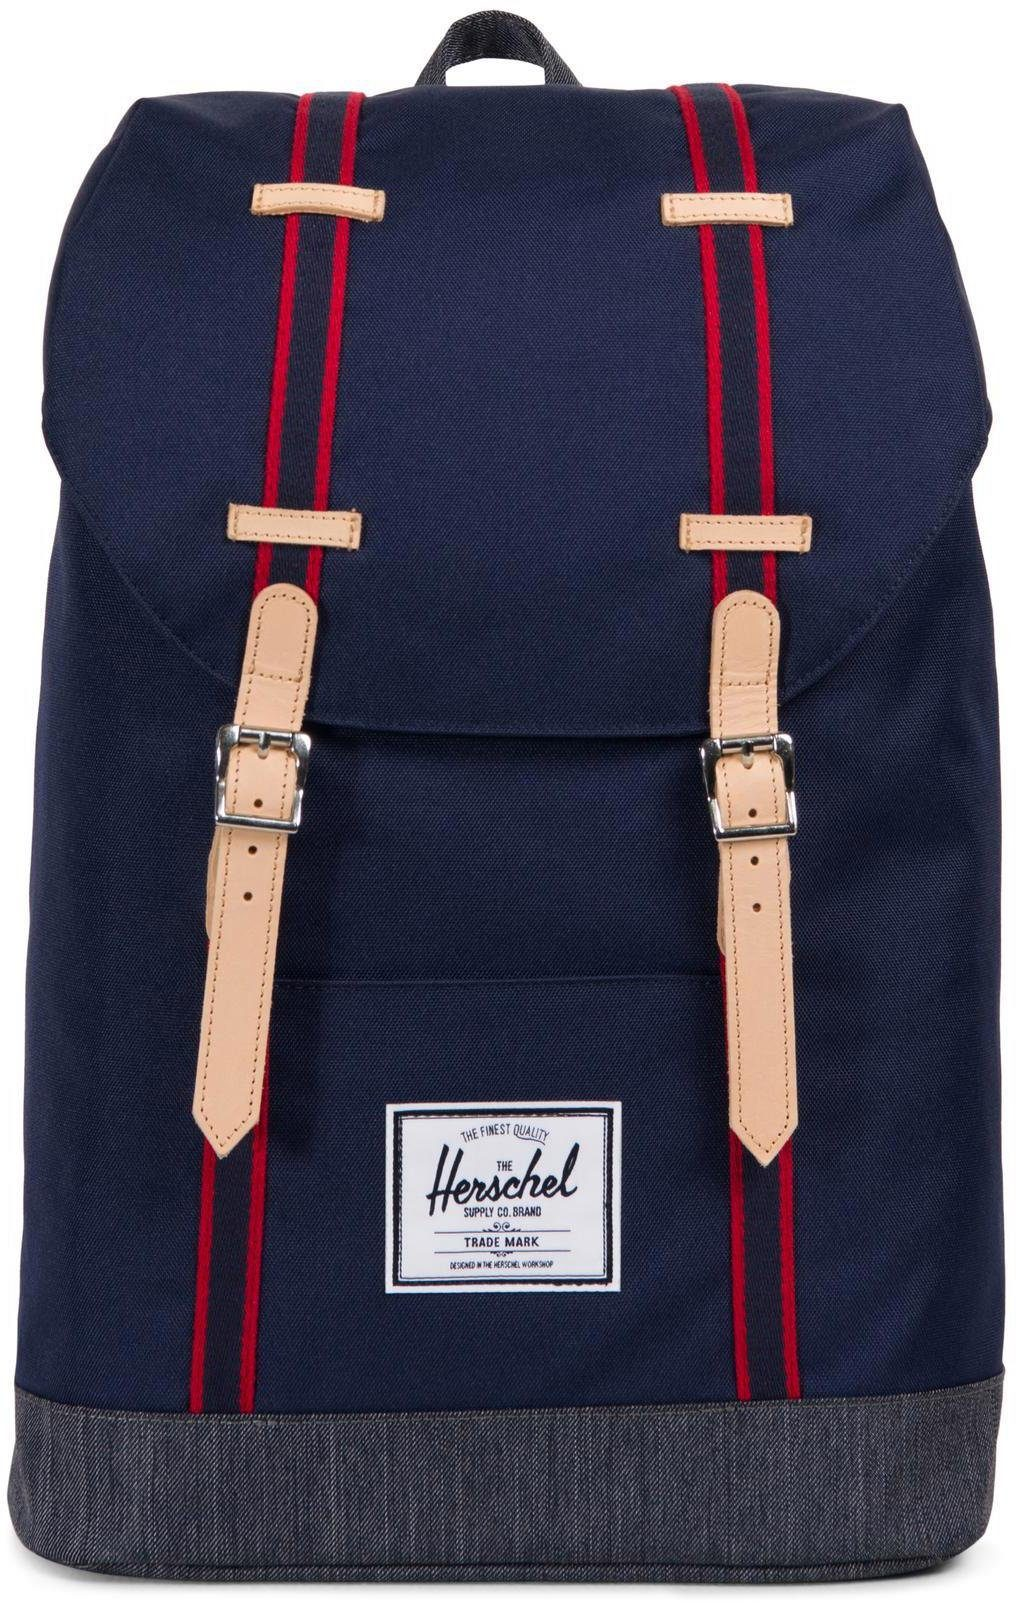 Herschel Rucksack mit Laptopfach, »Retreat, Peacoat/Dark Denim«